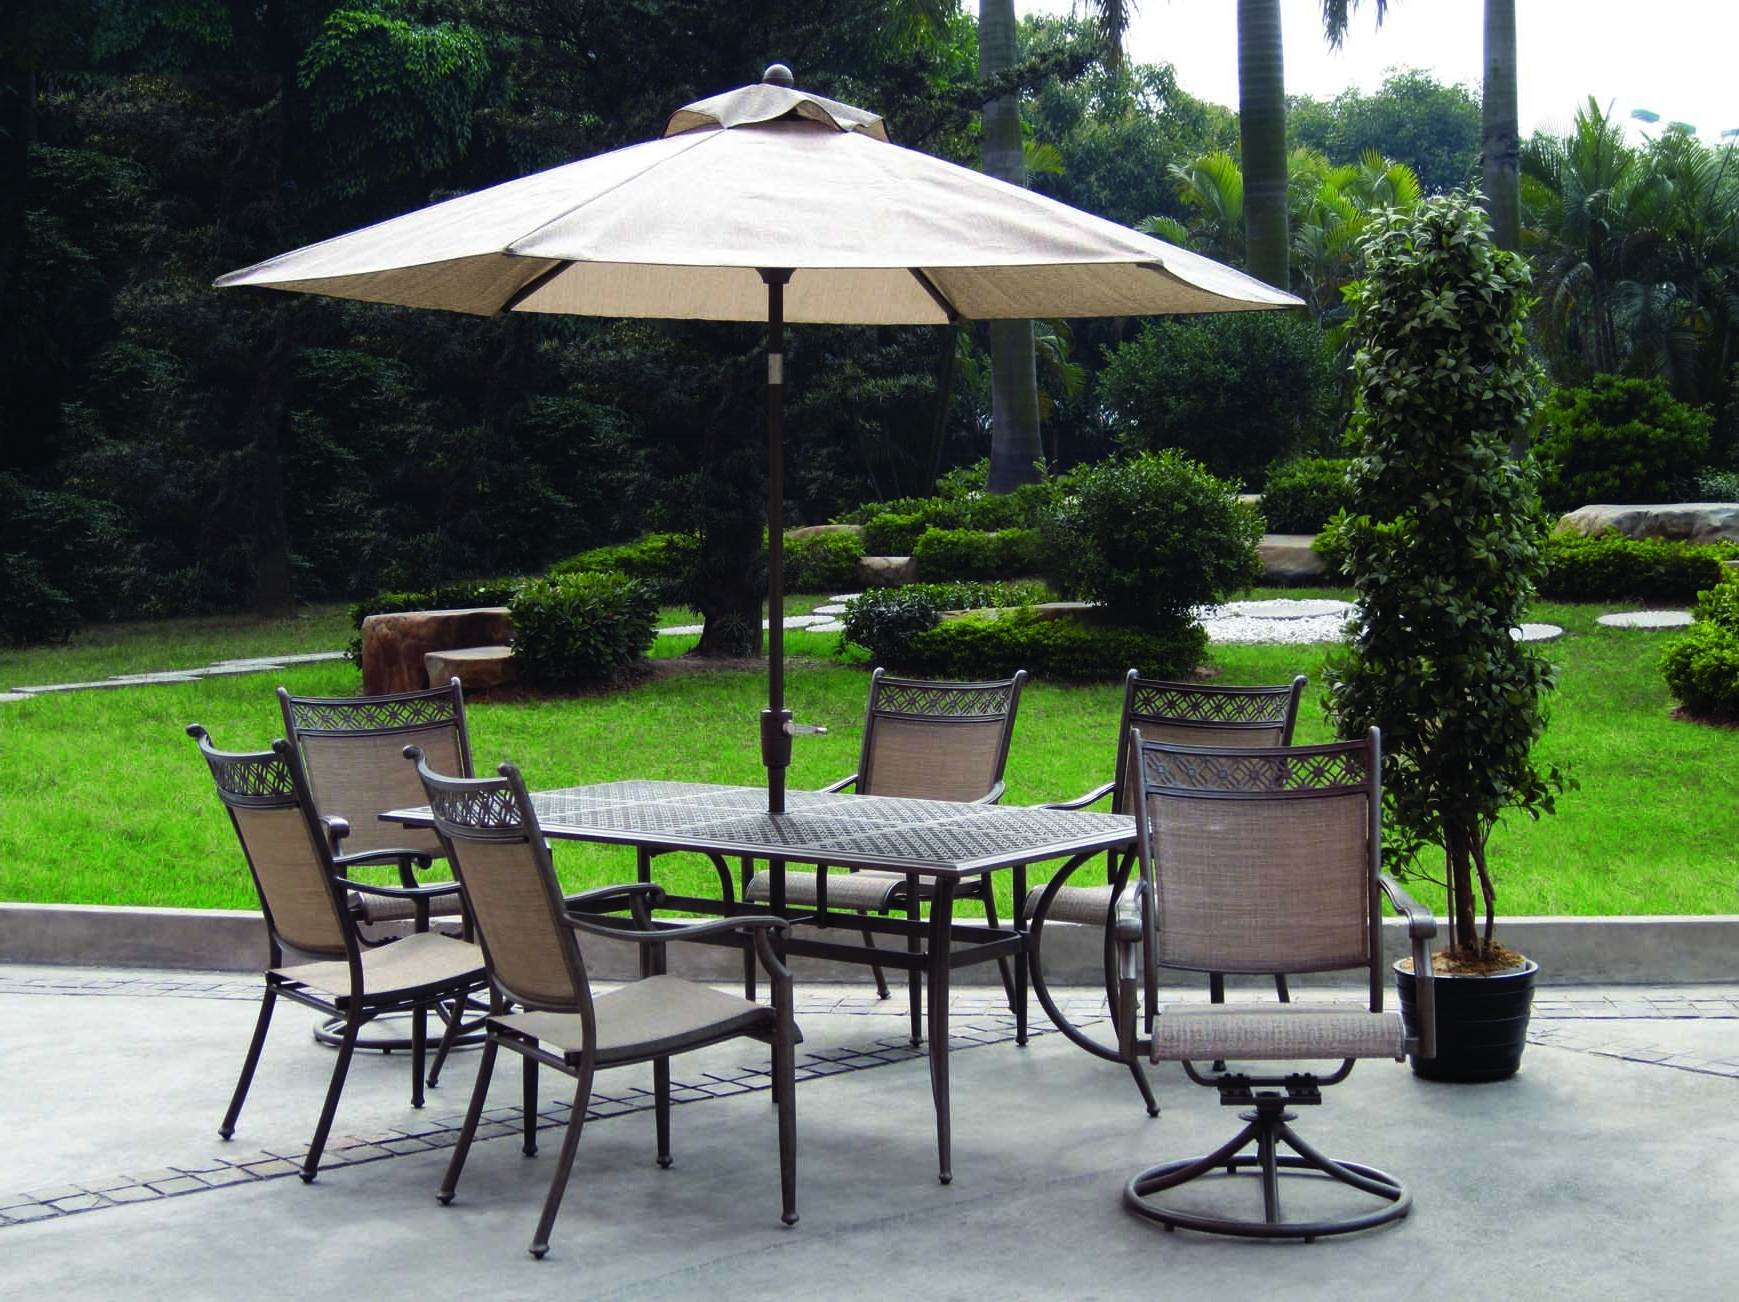 Home Depot Outdoor Furniture Umbrellas With 2 Swivel Chair Pine Intended For Fashionable Patio Furniture With Umbrellas (View 3 of 20)